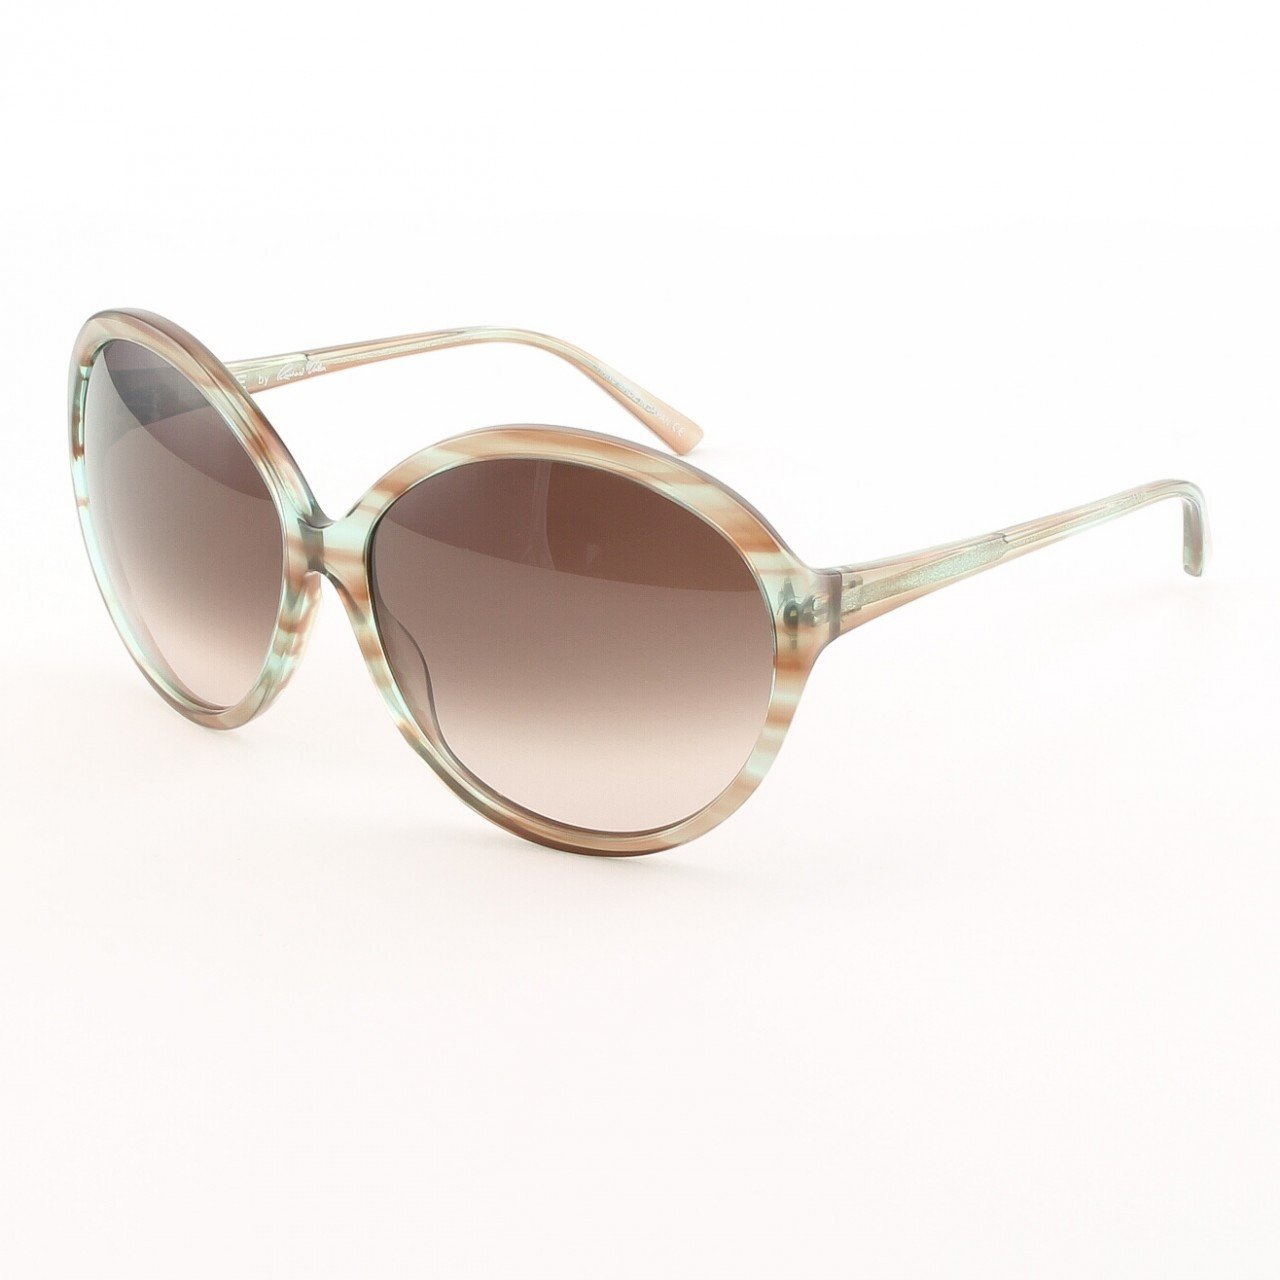 Blinde Way Hot Women's Sunglasses Col. Blue Crystal Tortoise with Pink Gradient Lenses